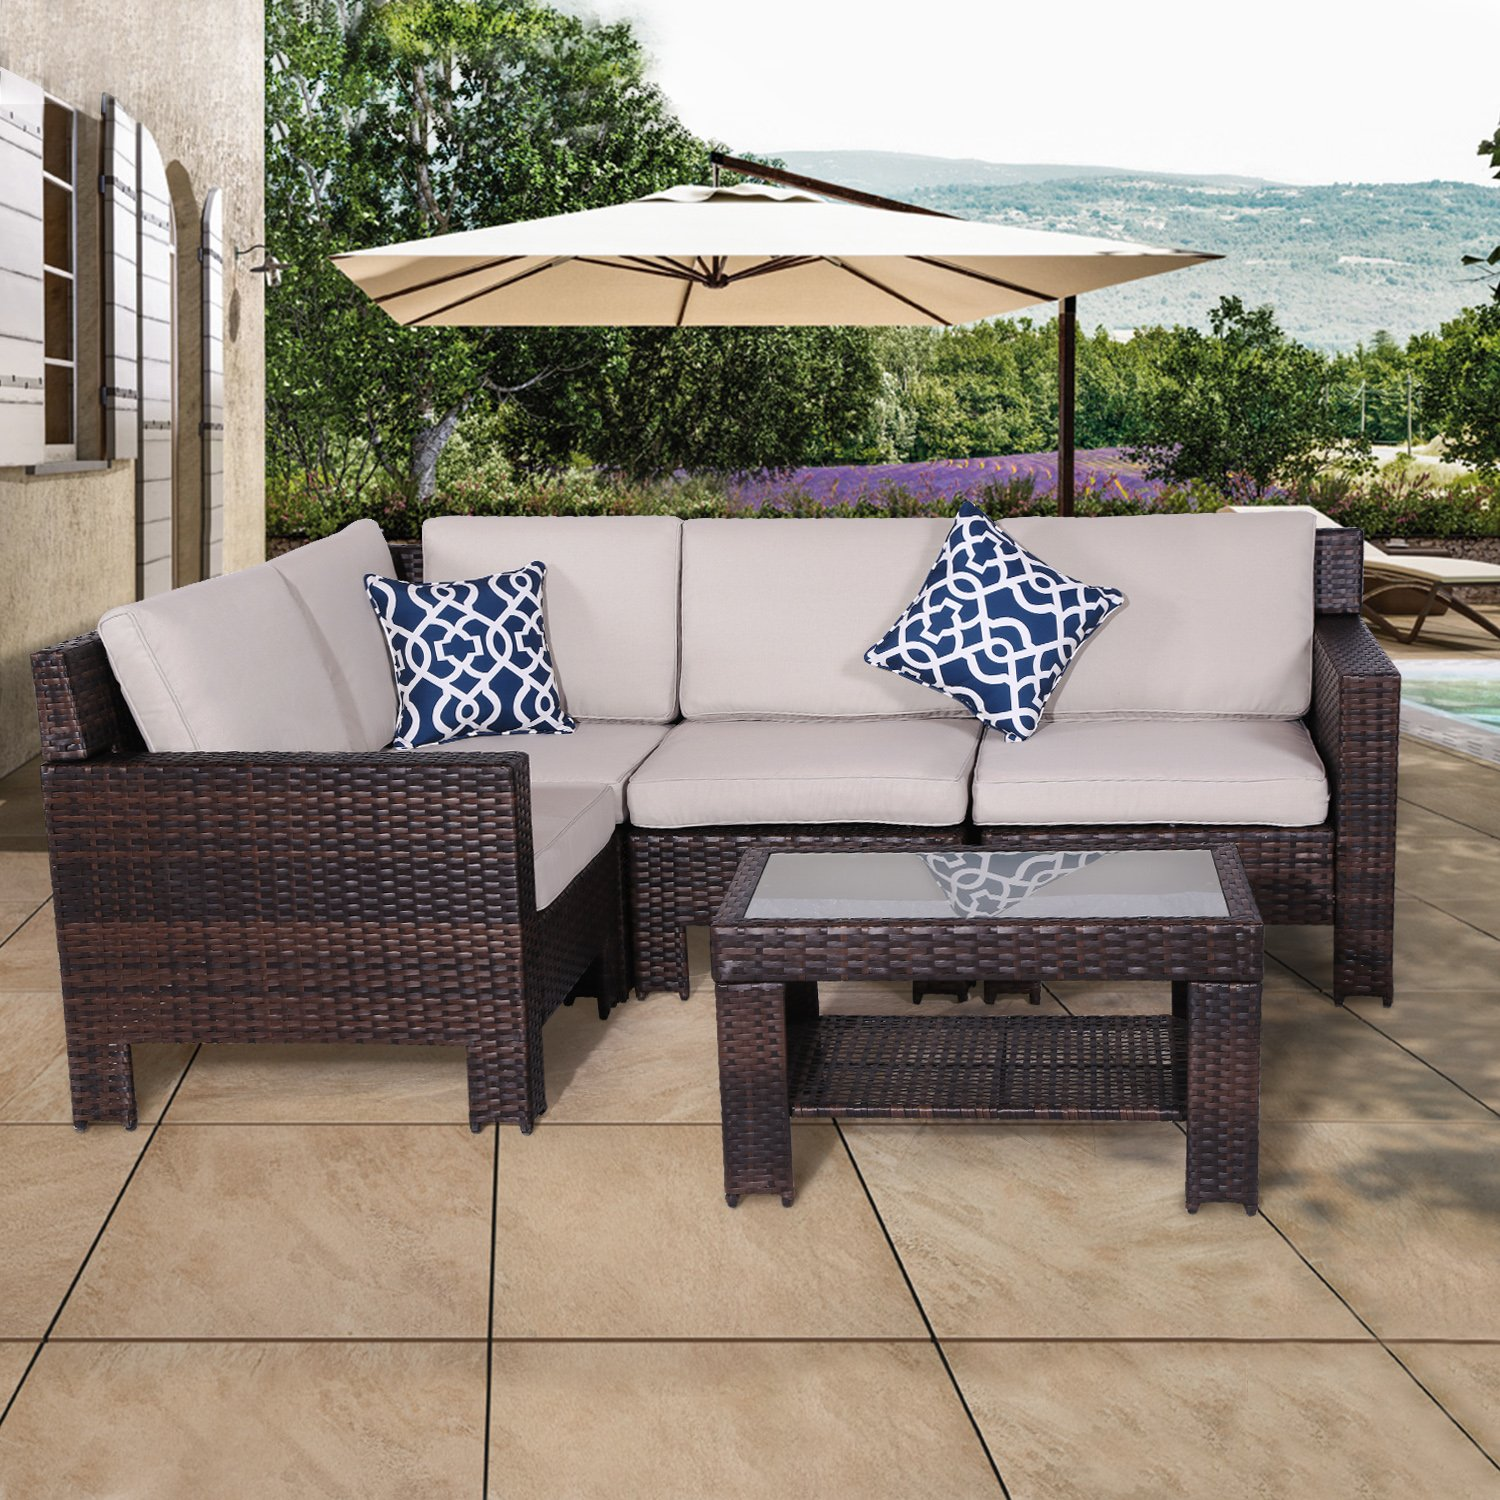 Get Quotations · Diensday Patio Outdoor Furniture|Sectional Sofa Couch Sets  Clearance Deep Seating Cushions Set, Olefin